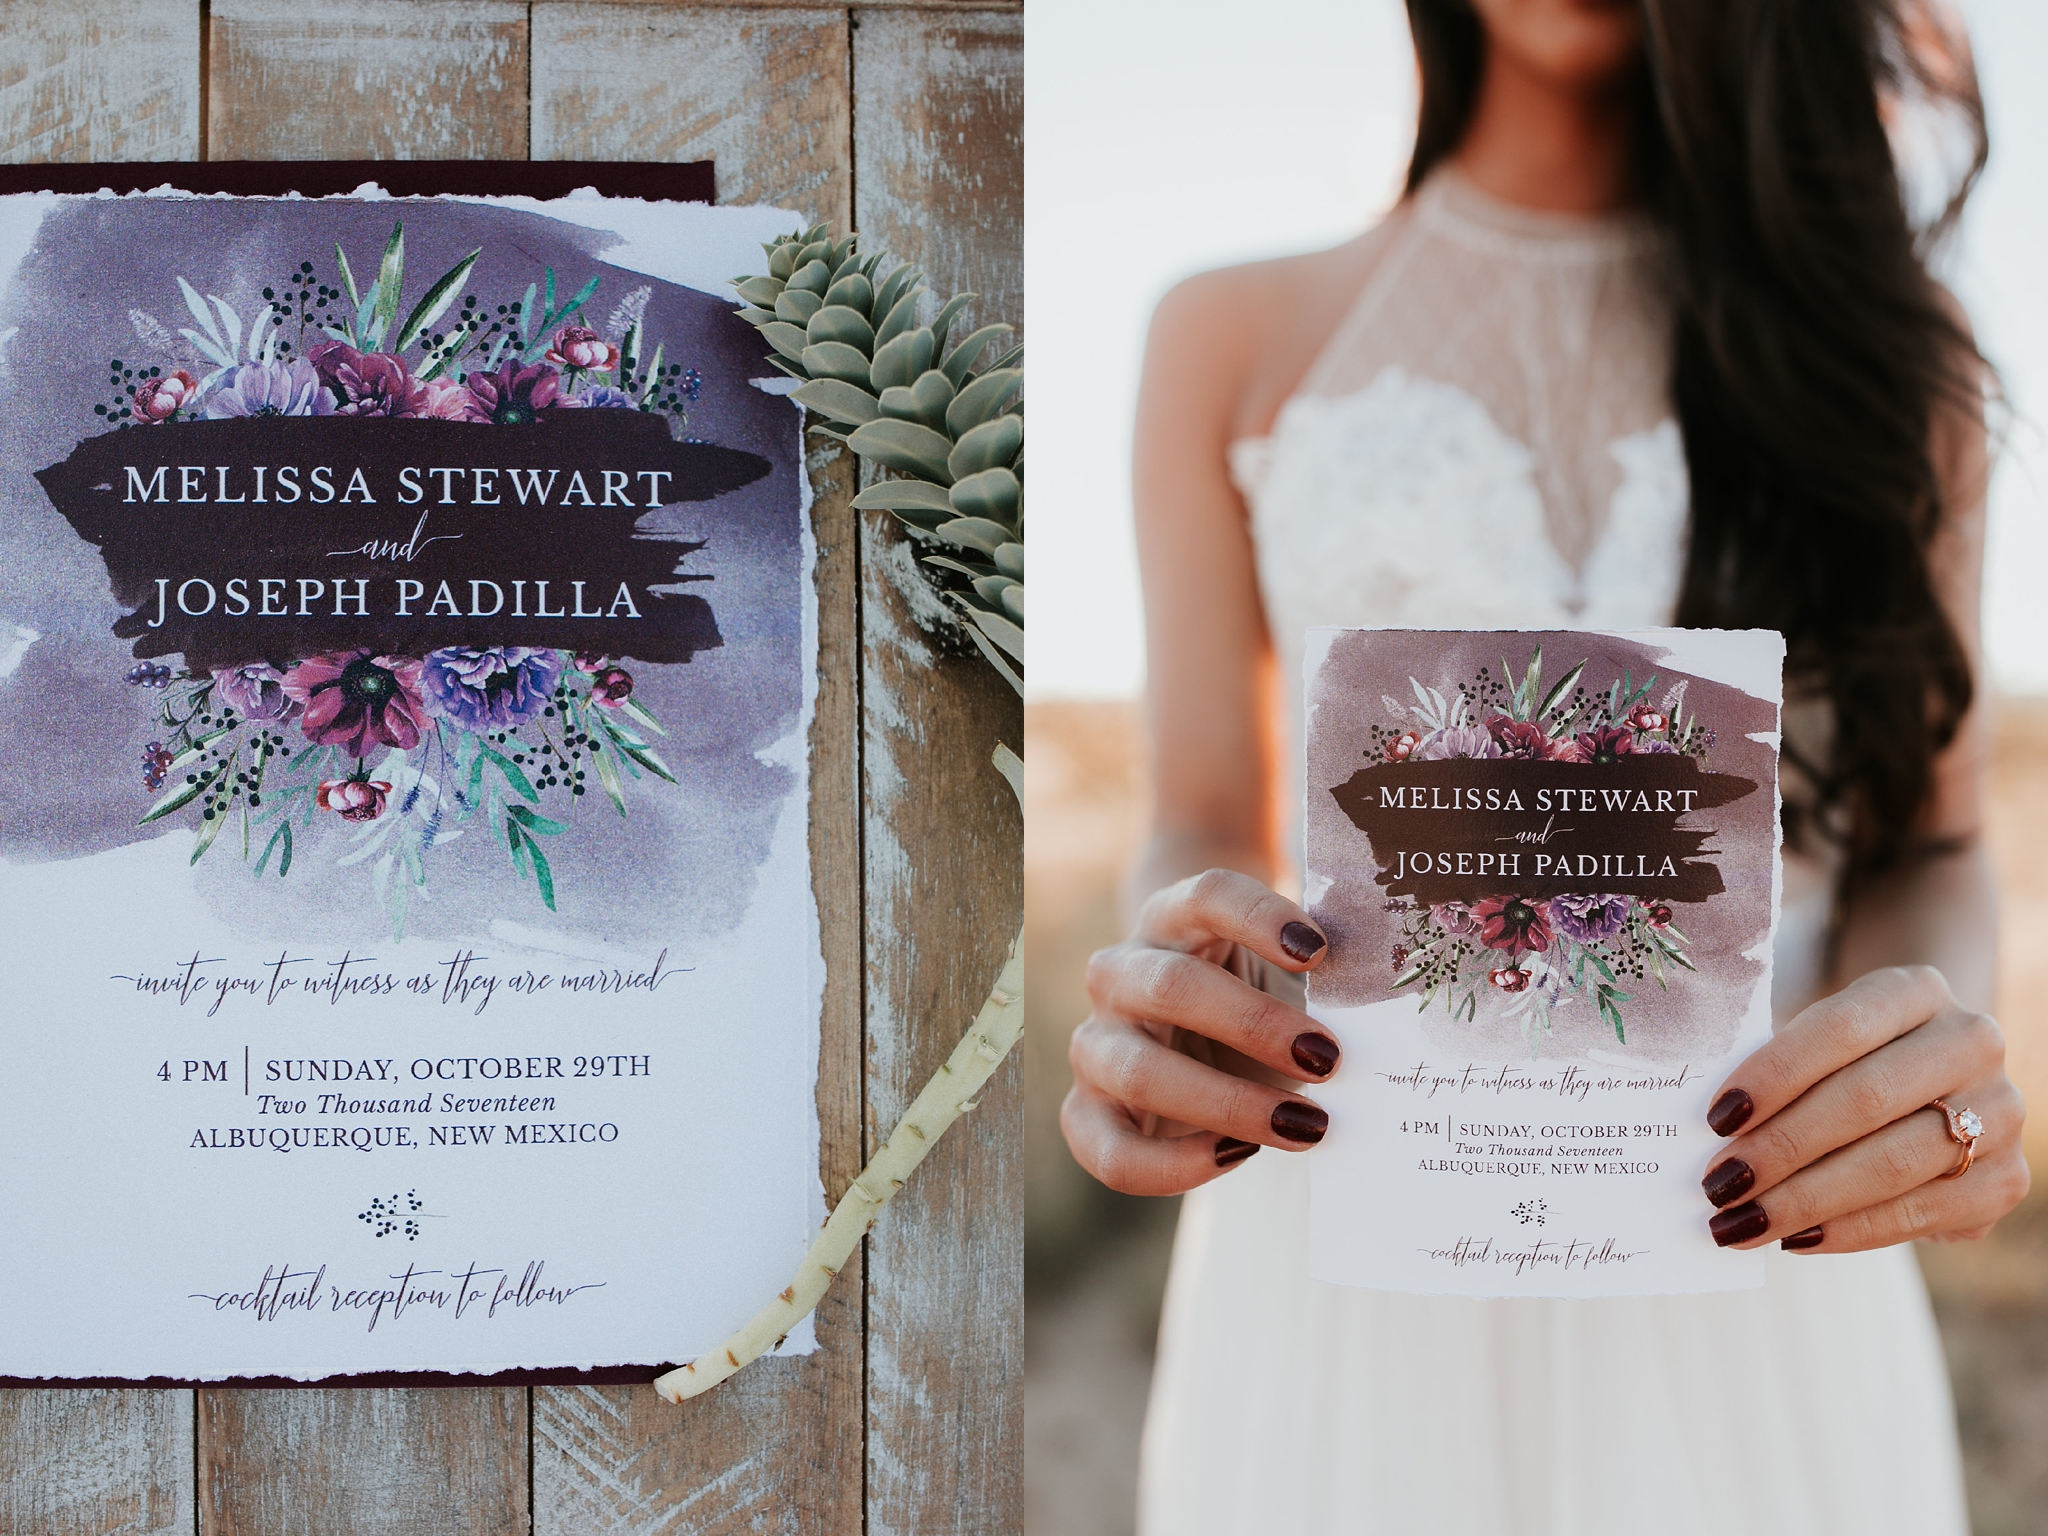 Alicia+lucia+photography+-+albuquerque+wedding+photographer+-+santa+fe+wedding+photography+-+new+mexico+wedding+photographer+-+new+mexico+wedding+-+wedding+invitations+-+invitation+suite+-+wedding+inspo_0036.jpg